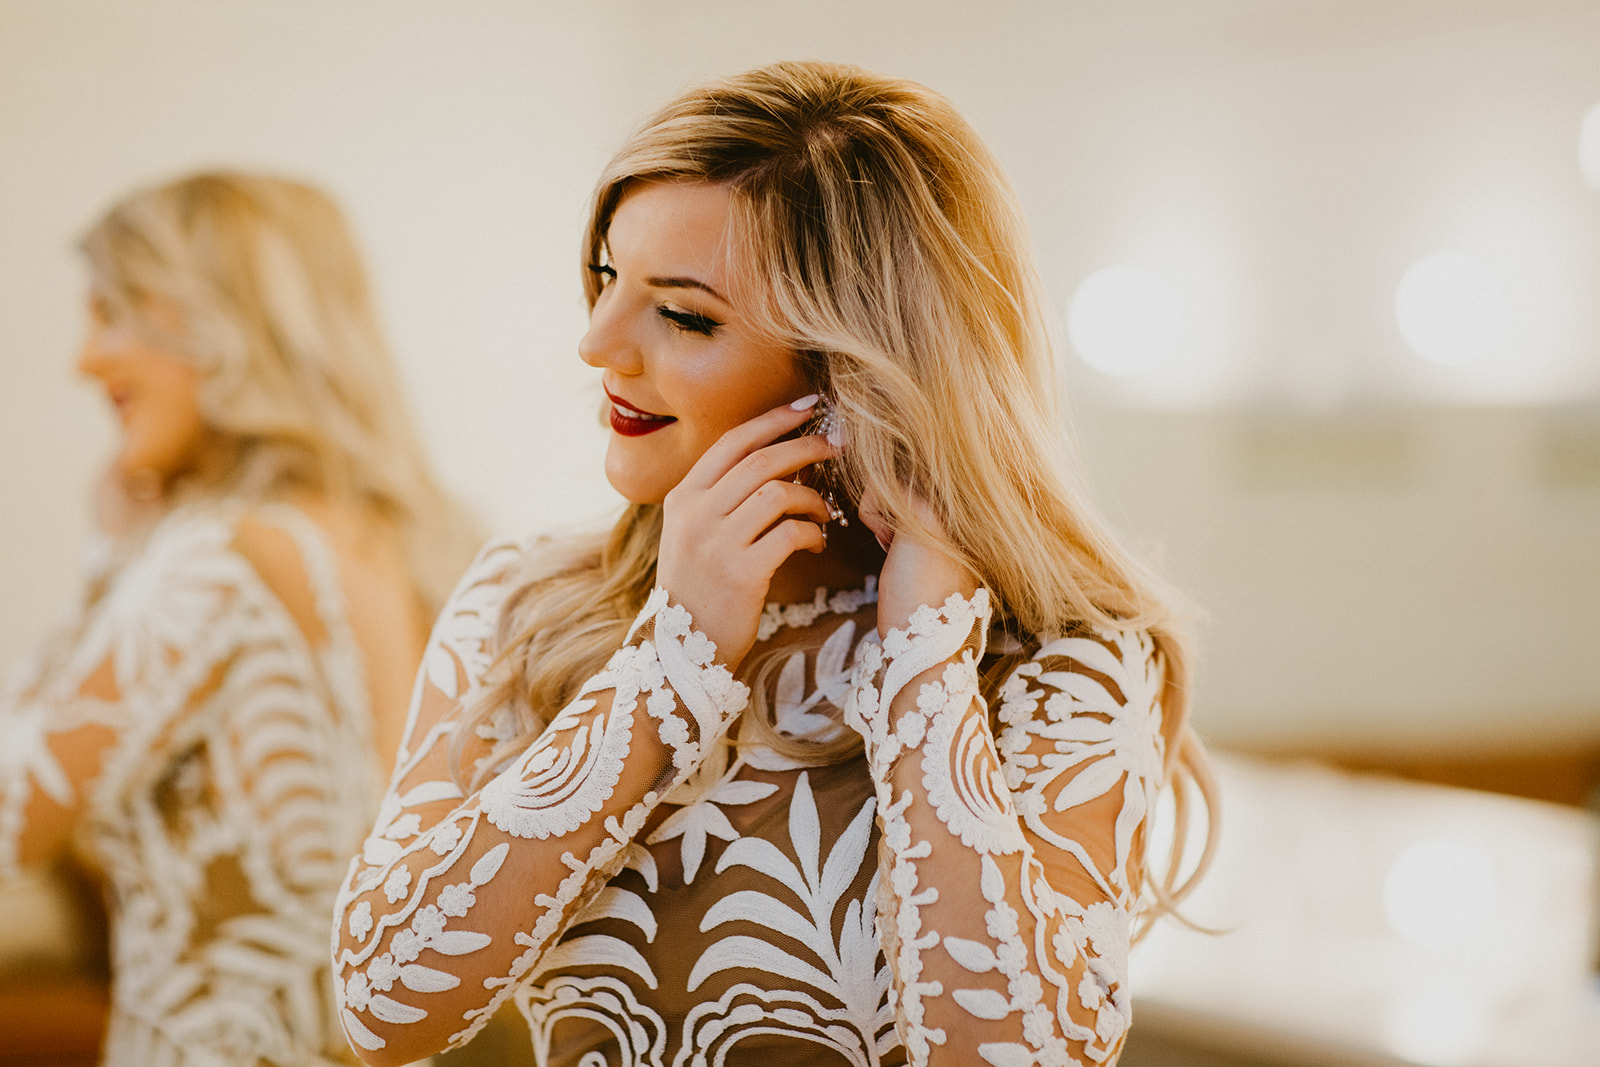 bride getting ready images putting on earrings + boho + hollywood glam hairstyle + makeup